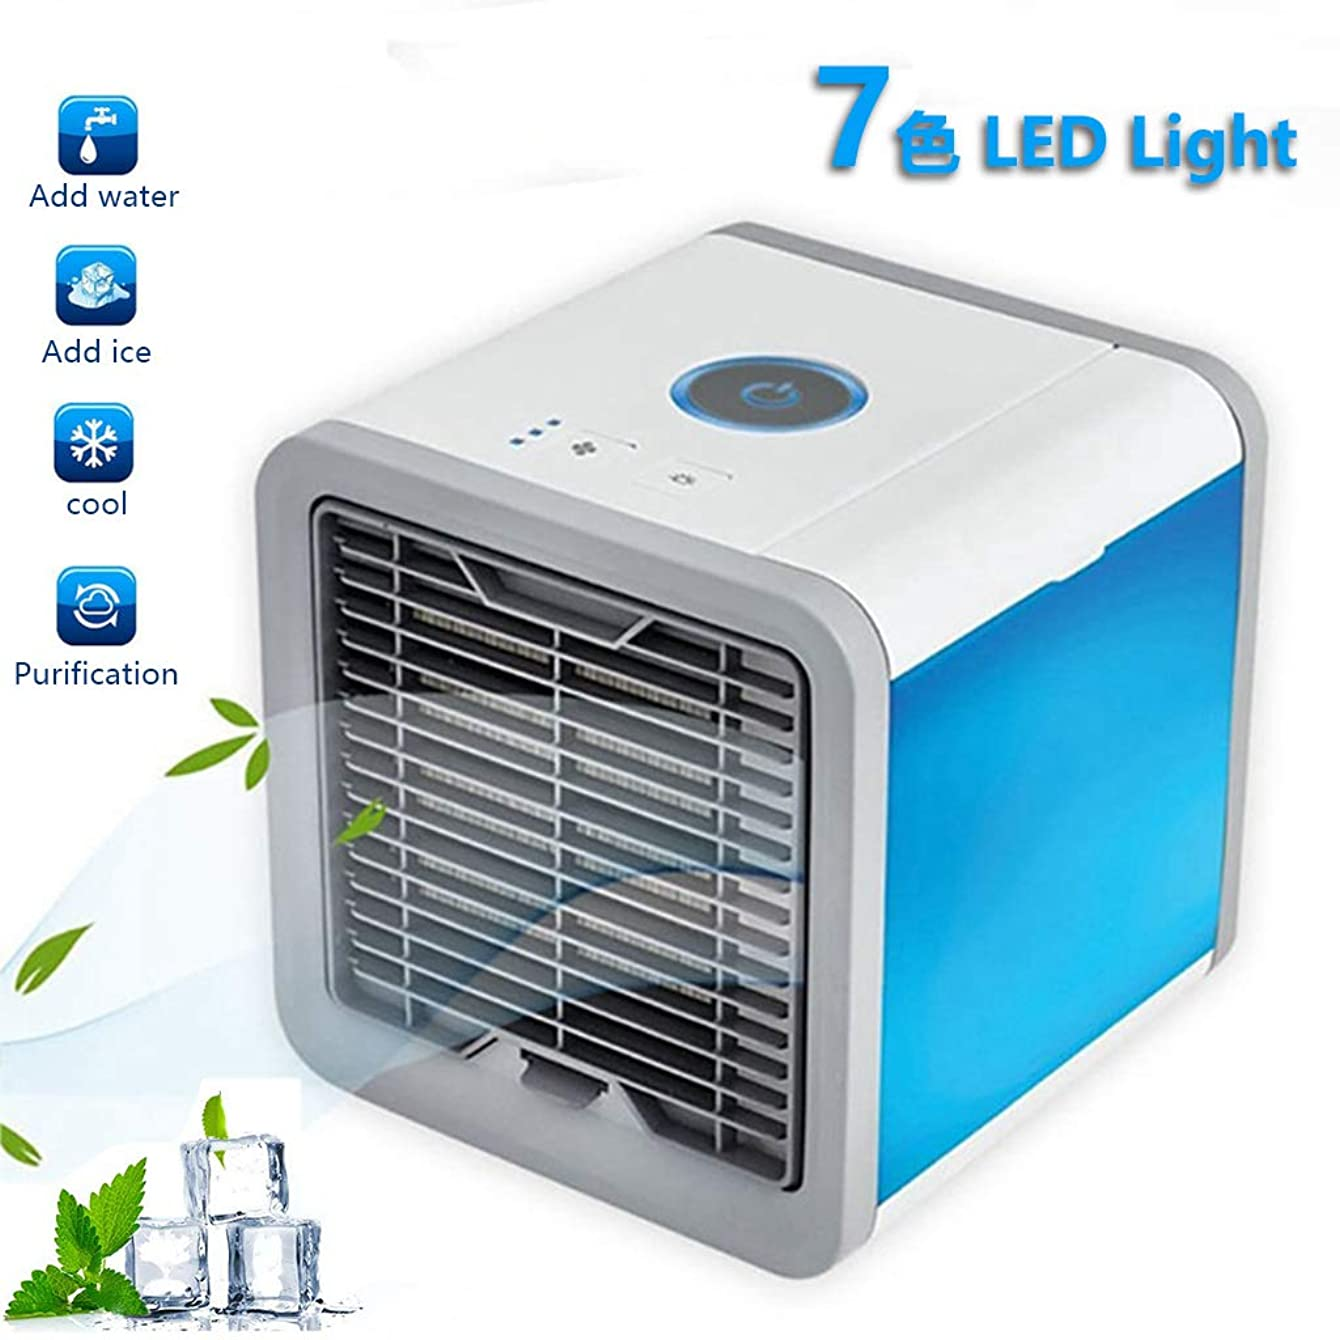 K-Flame Air Cooler New Mini Air Conditioner Portable Fan for Home with USB Muitifunction Air Purifier for Office Bedroom Travel